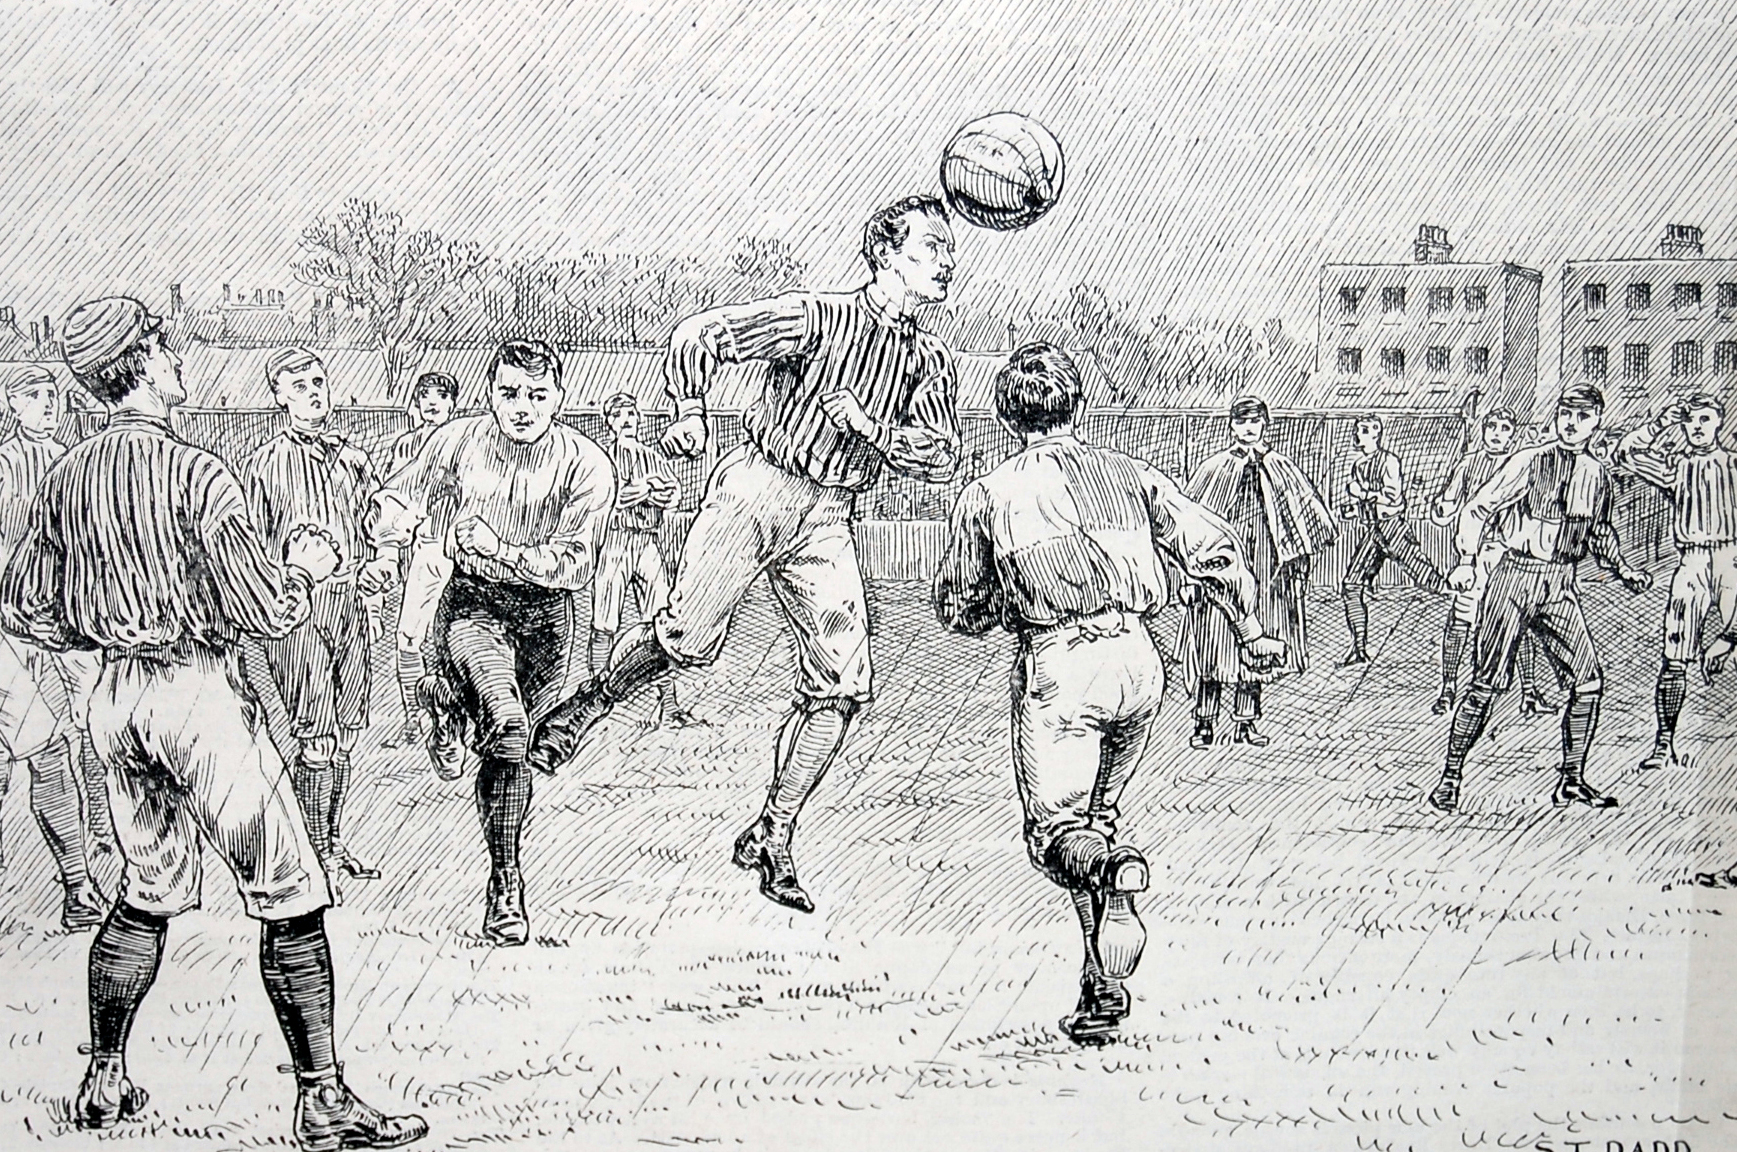 the ancient origins and development of football A ancient football - the first foot ball in history the first ever soccer ball in history was invented by ancient civilizations, 3000 years ago the chinese, aztec and maya indians, and egyptians each had their own contributions to the first soccer ball in history.